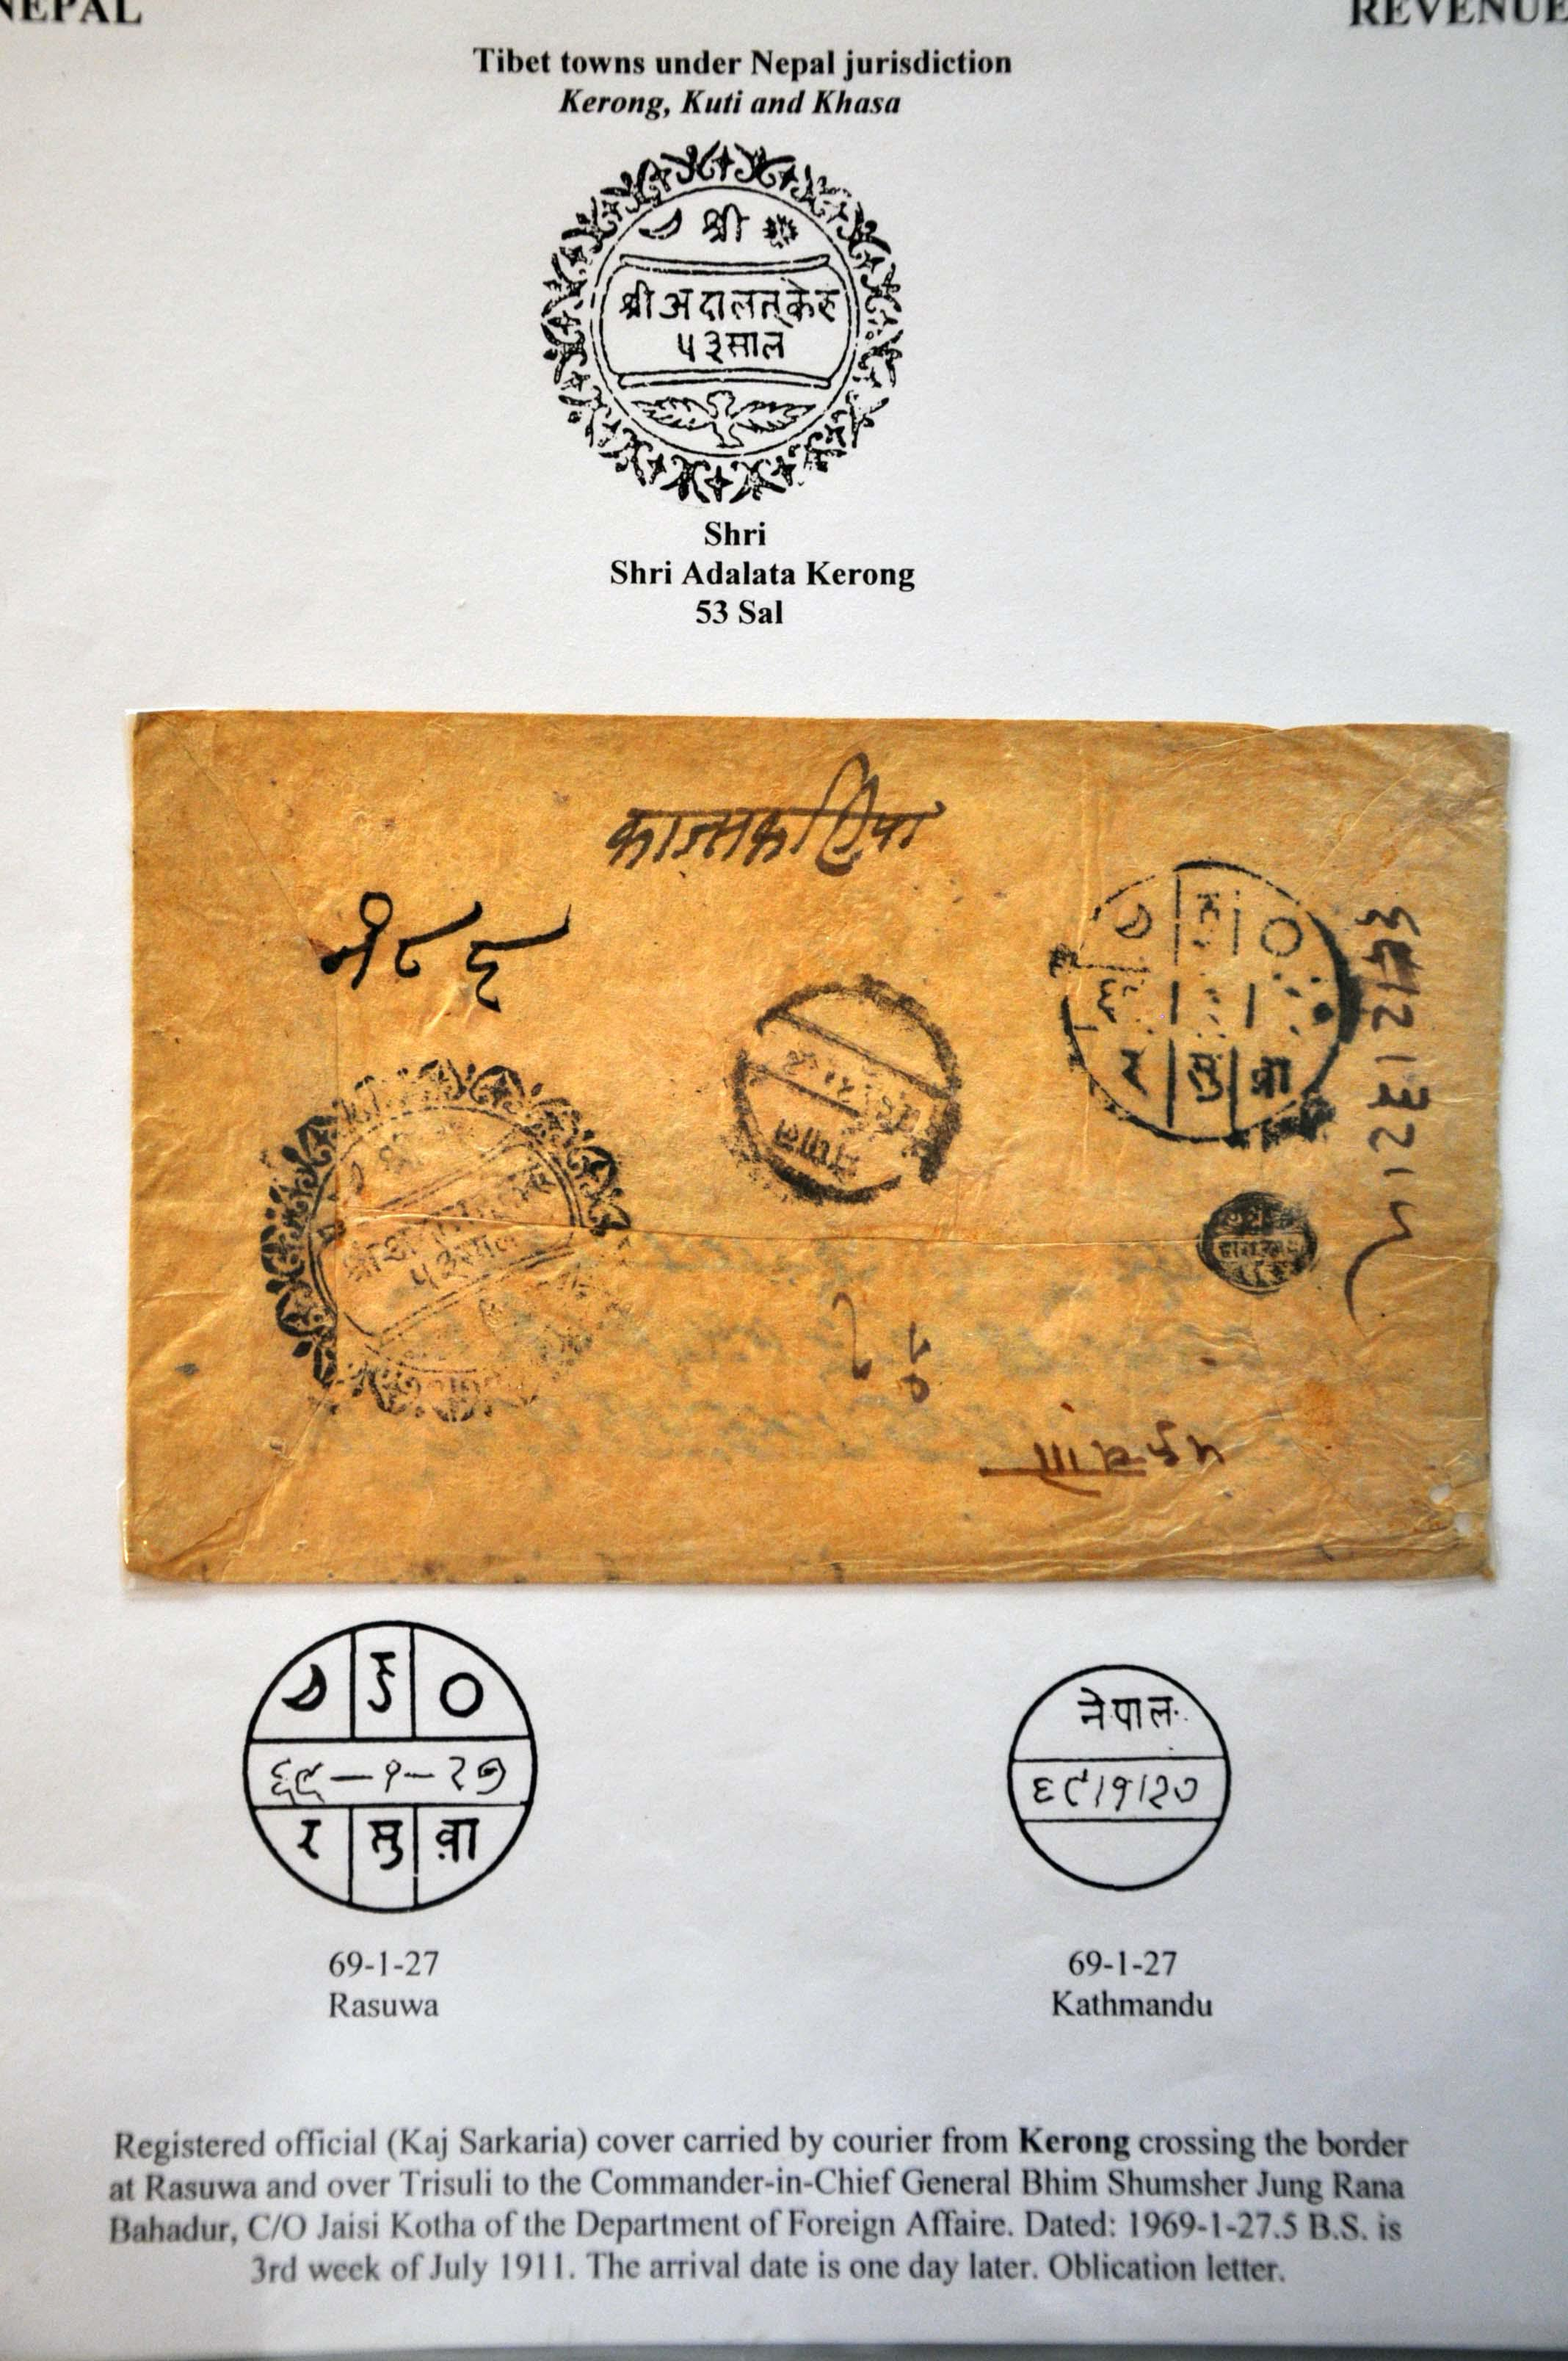 Lot 82 - Great Britain and former colonies Nepal -  Corinphila Veilingen Auction 245-246 Day 1 - Nepal - The Dick van der Wateren Collection, Foreign countries - Single lots, Picture postcards